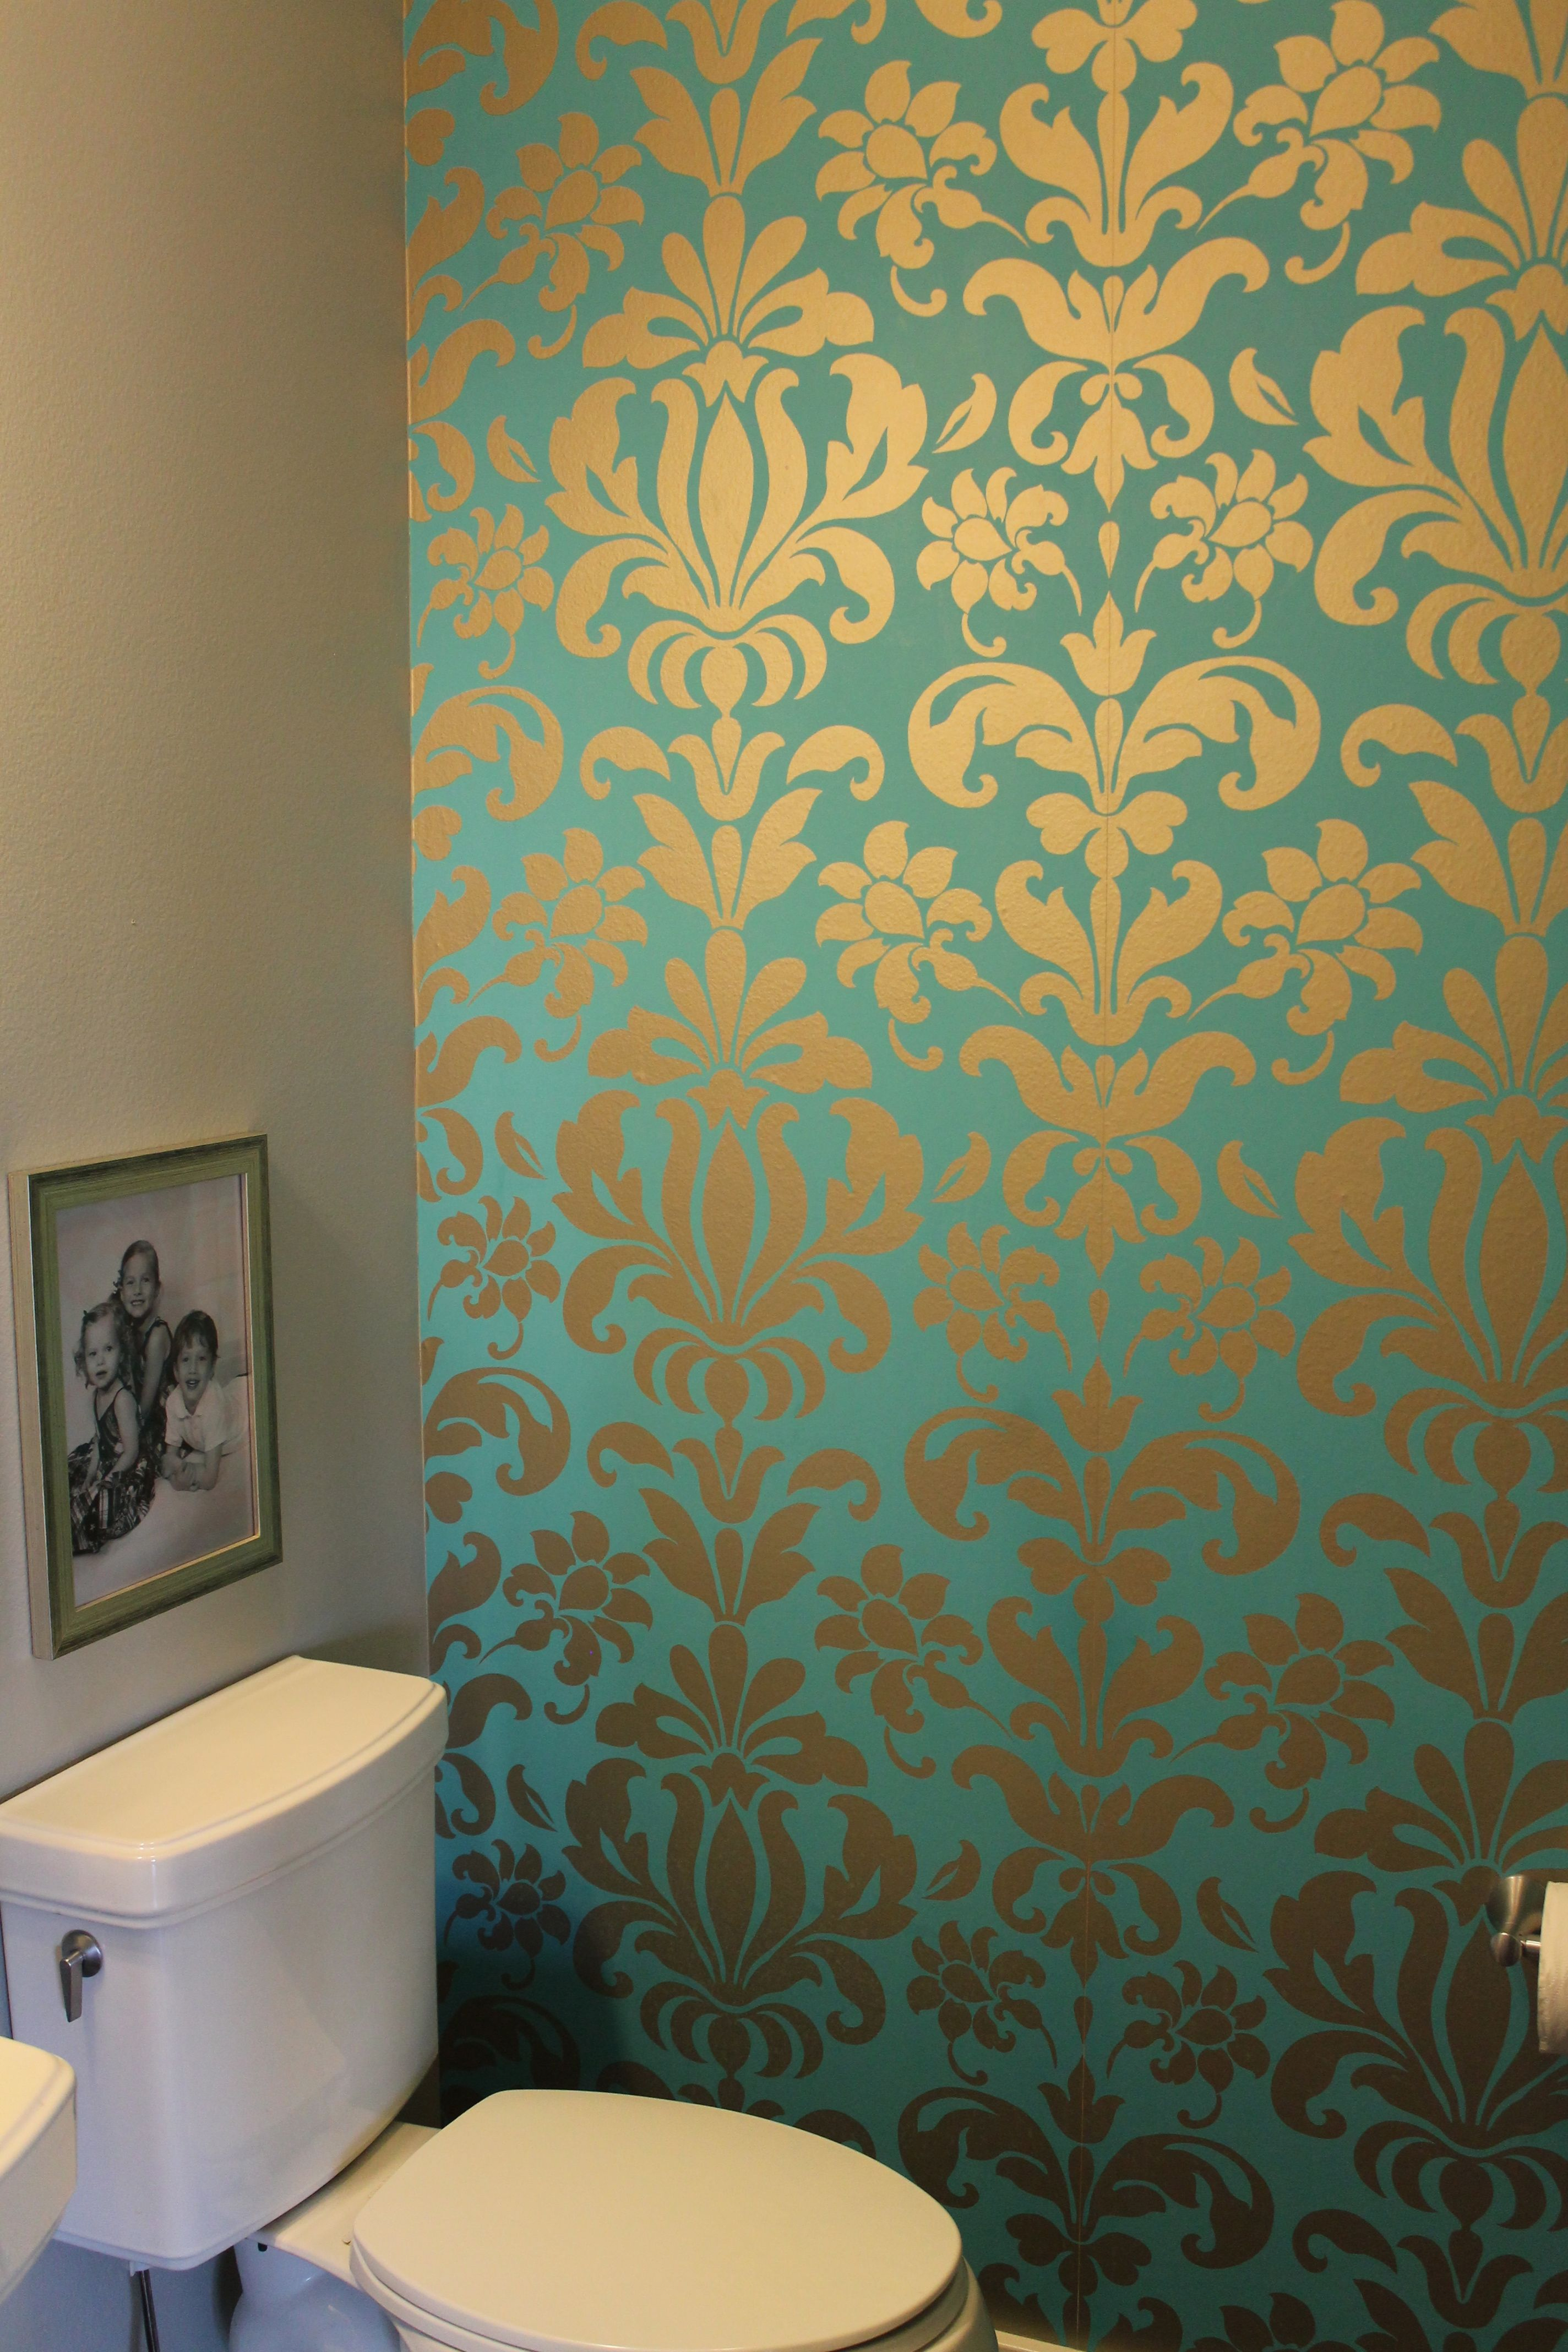 Teal and silver damask wallpaper Two years later and I still love